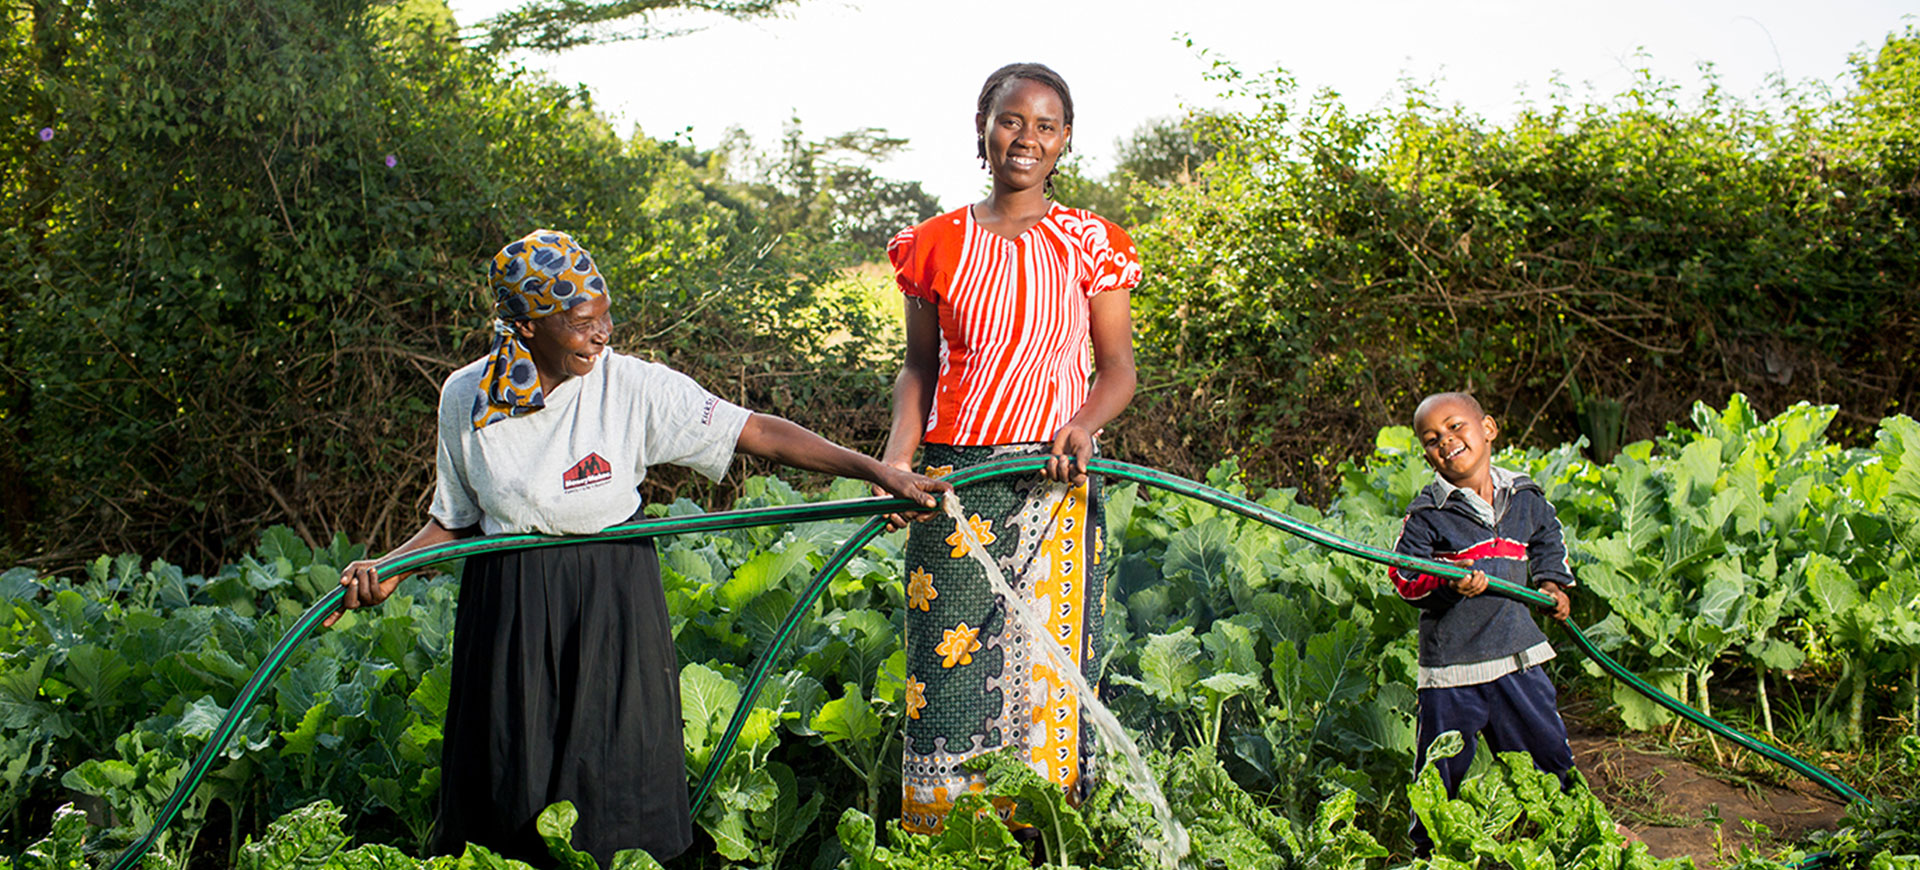 Young woman smiling while holding hose in a field of leafy crops. Older woman smiling and spraying hose on her left and young boy smiling while holding hose on her right.